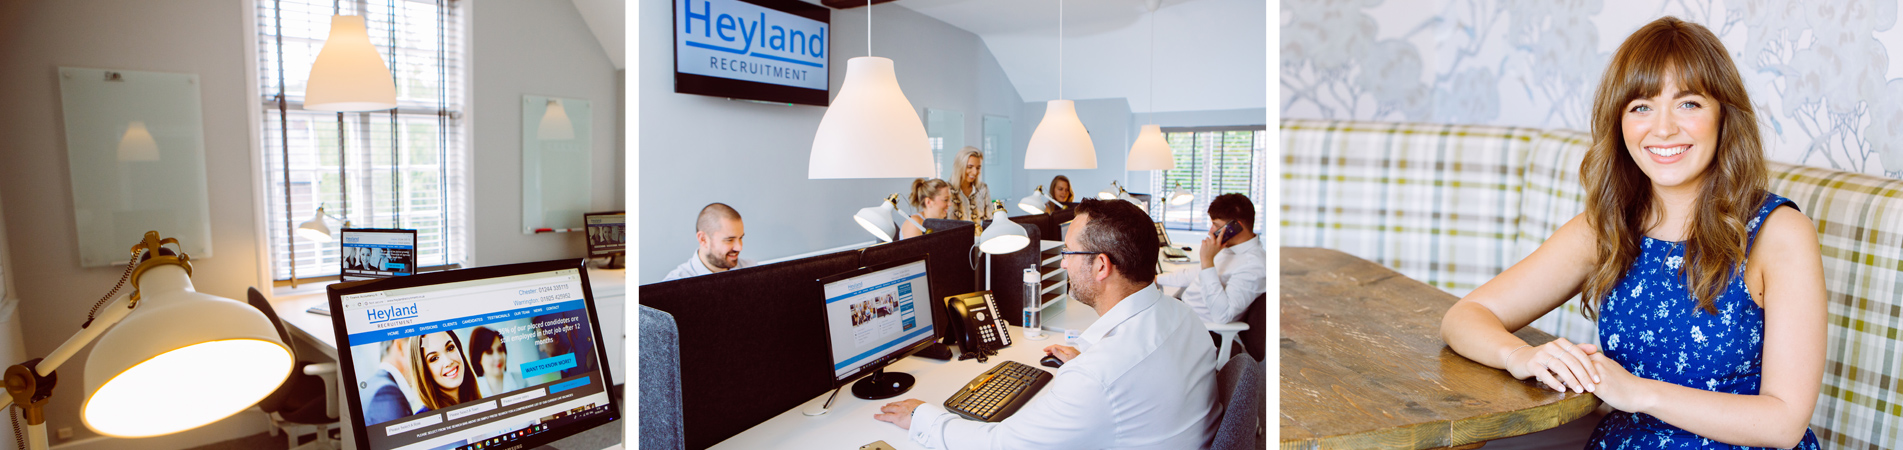 Introducing Heyland Recruitment, our latest recruit